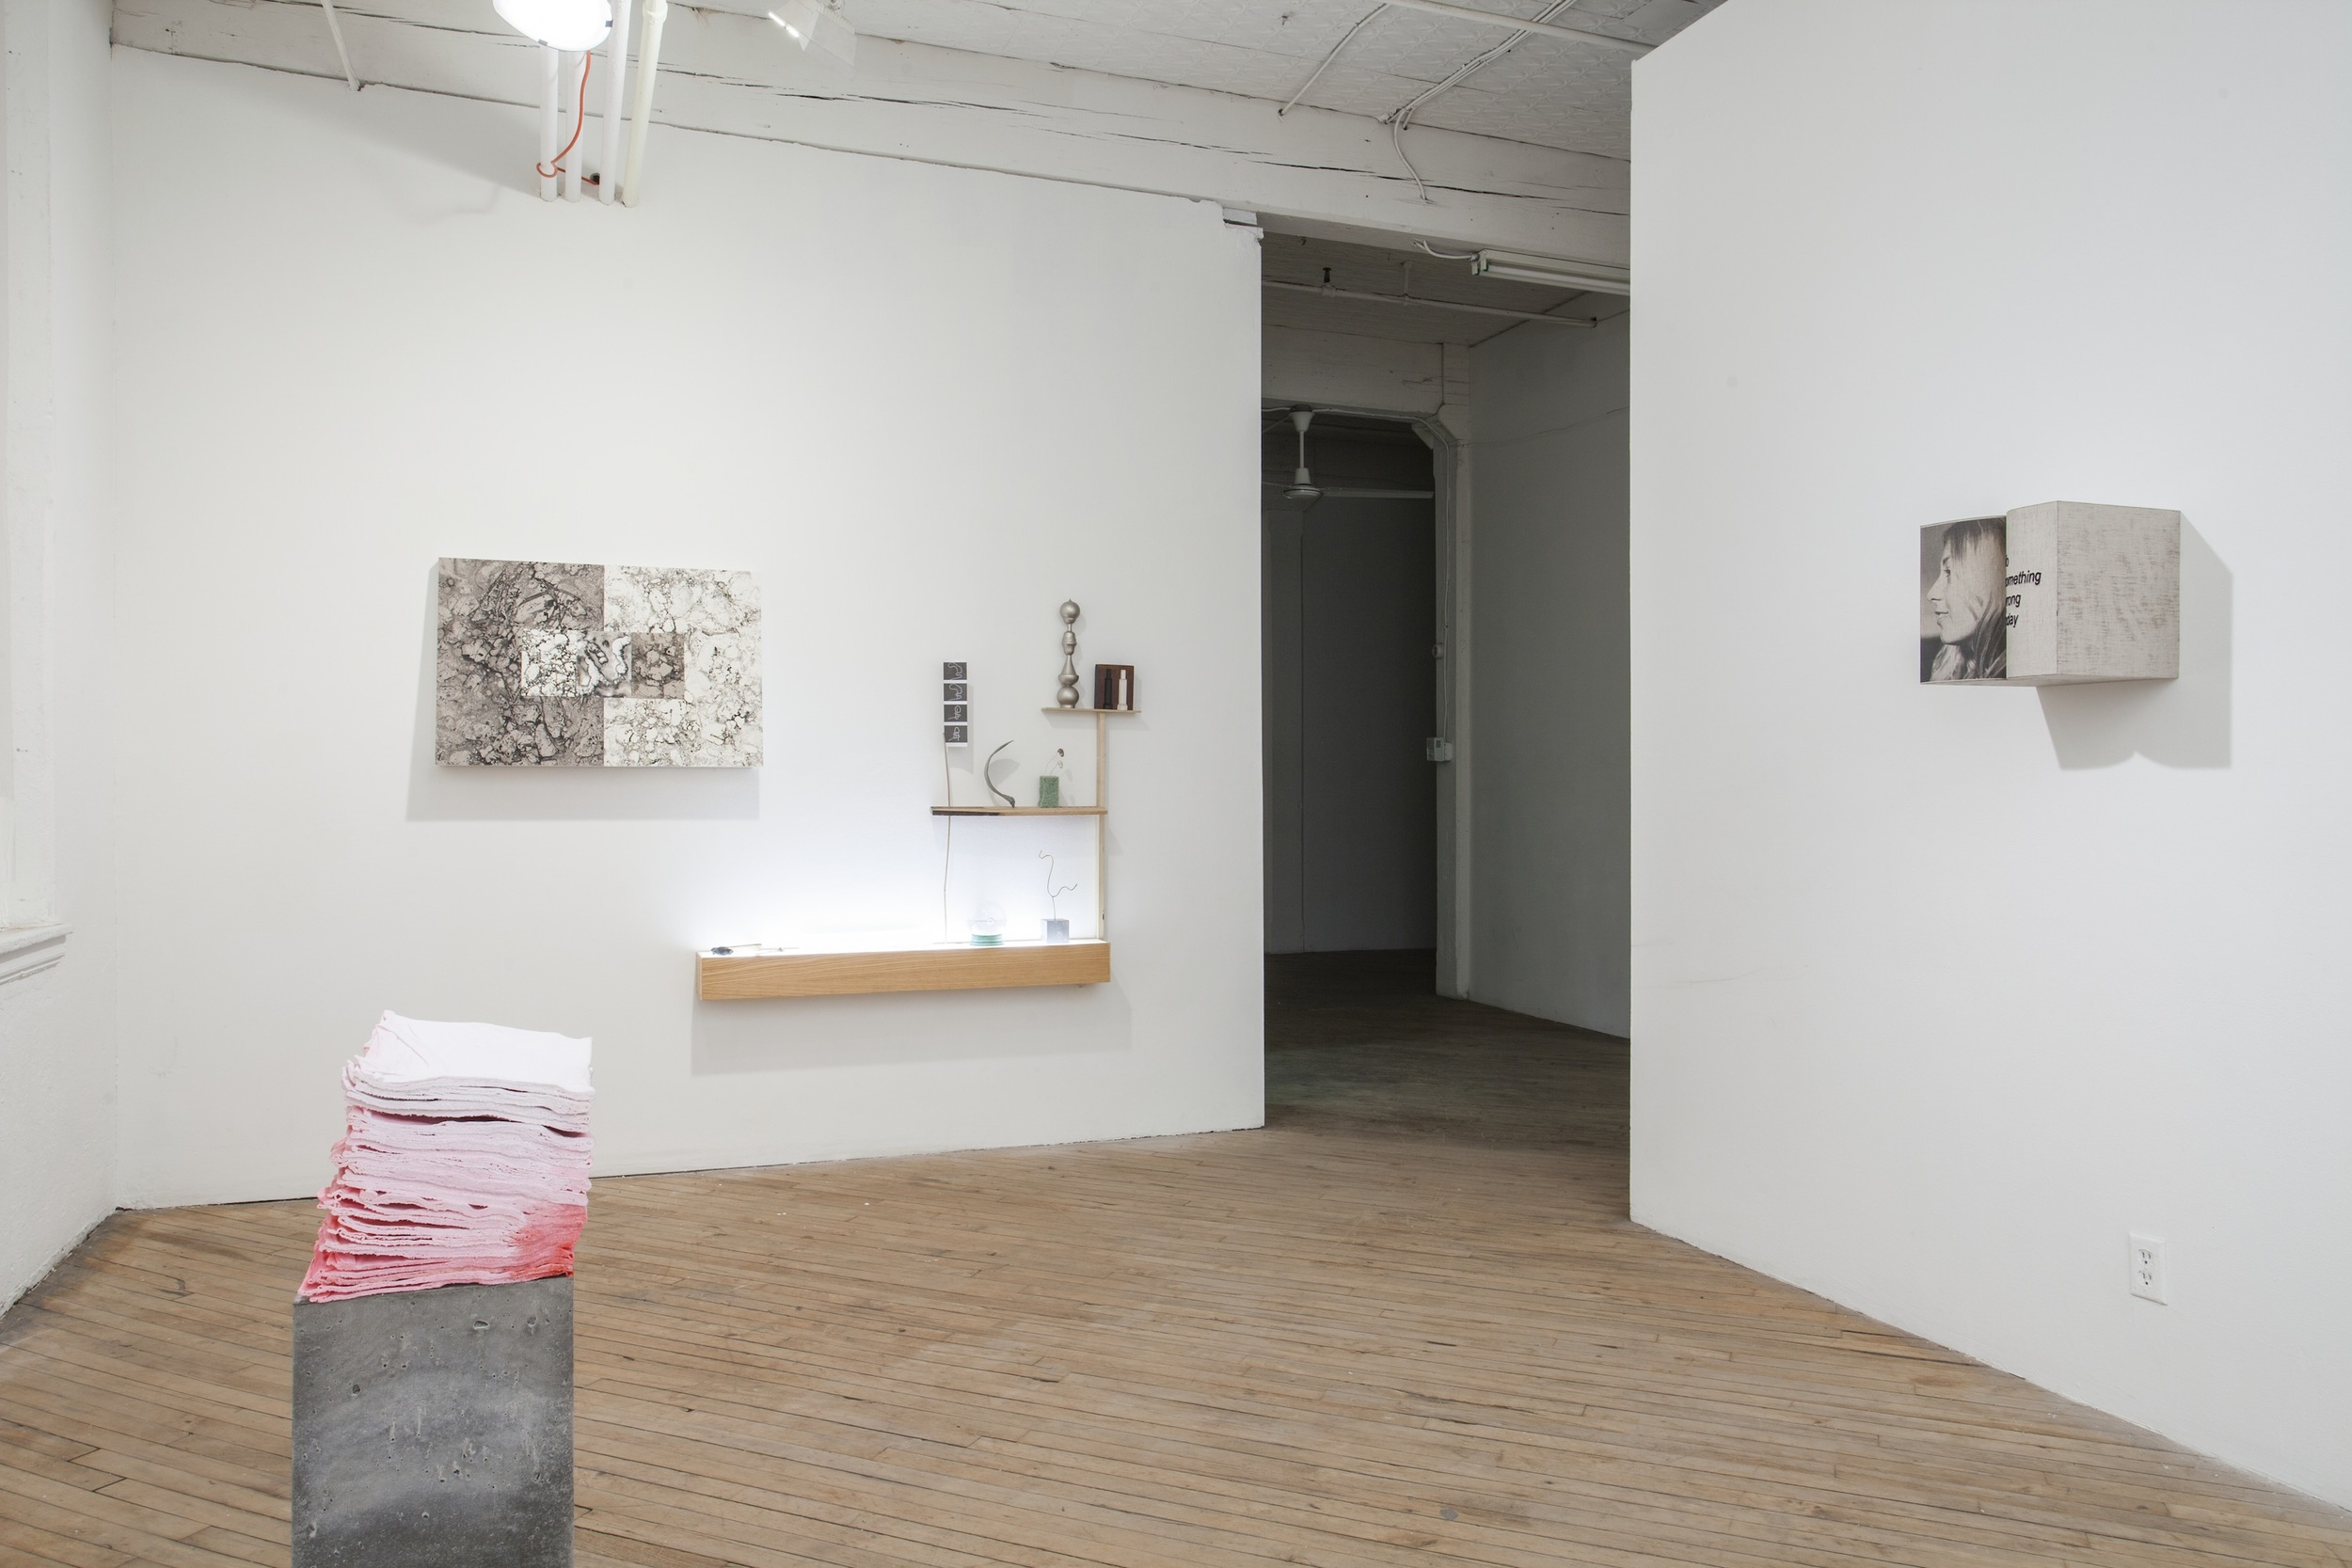 Accruing Meaning Installation View